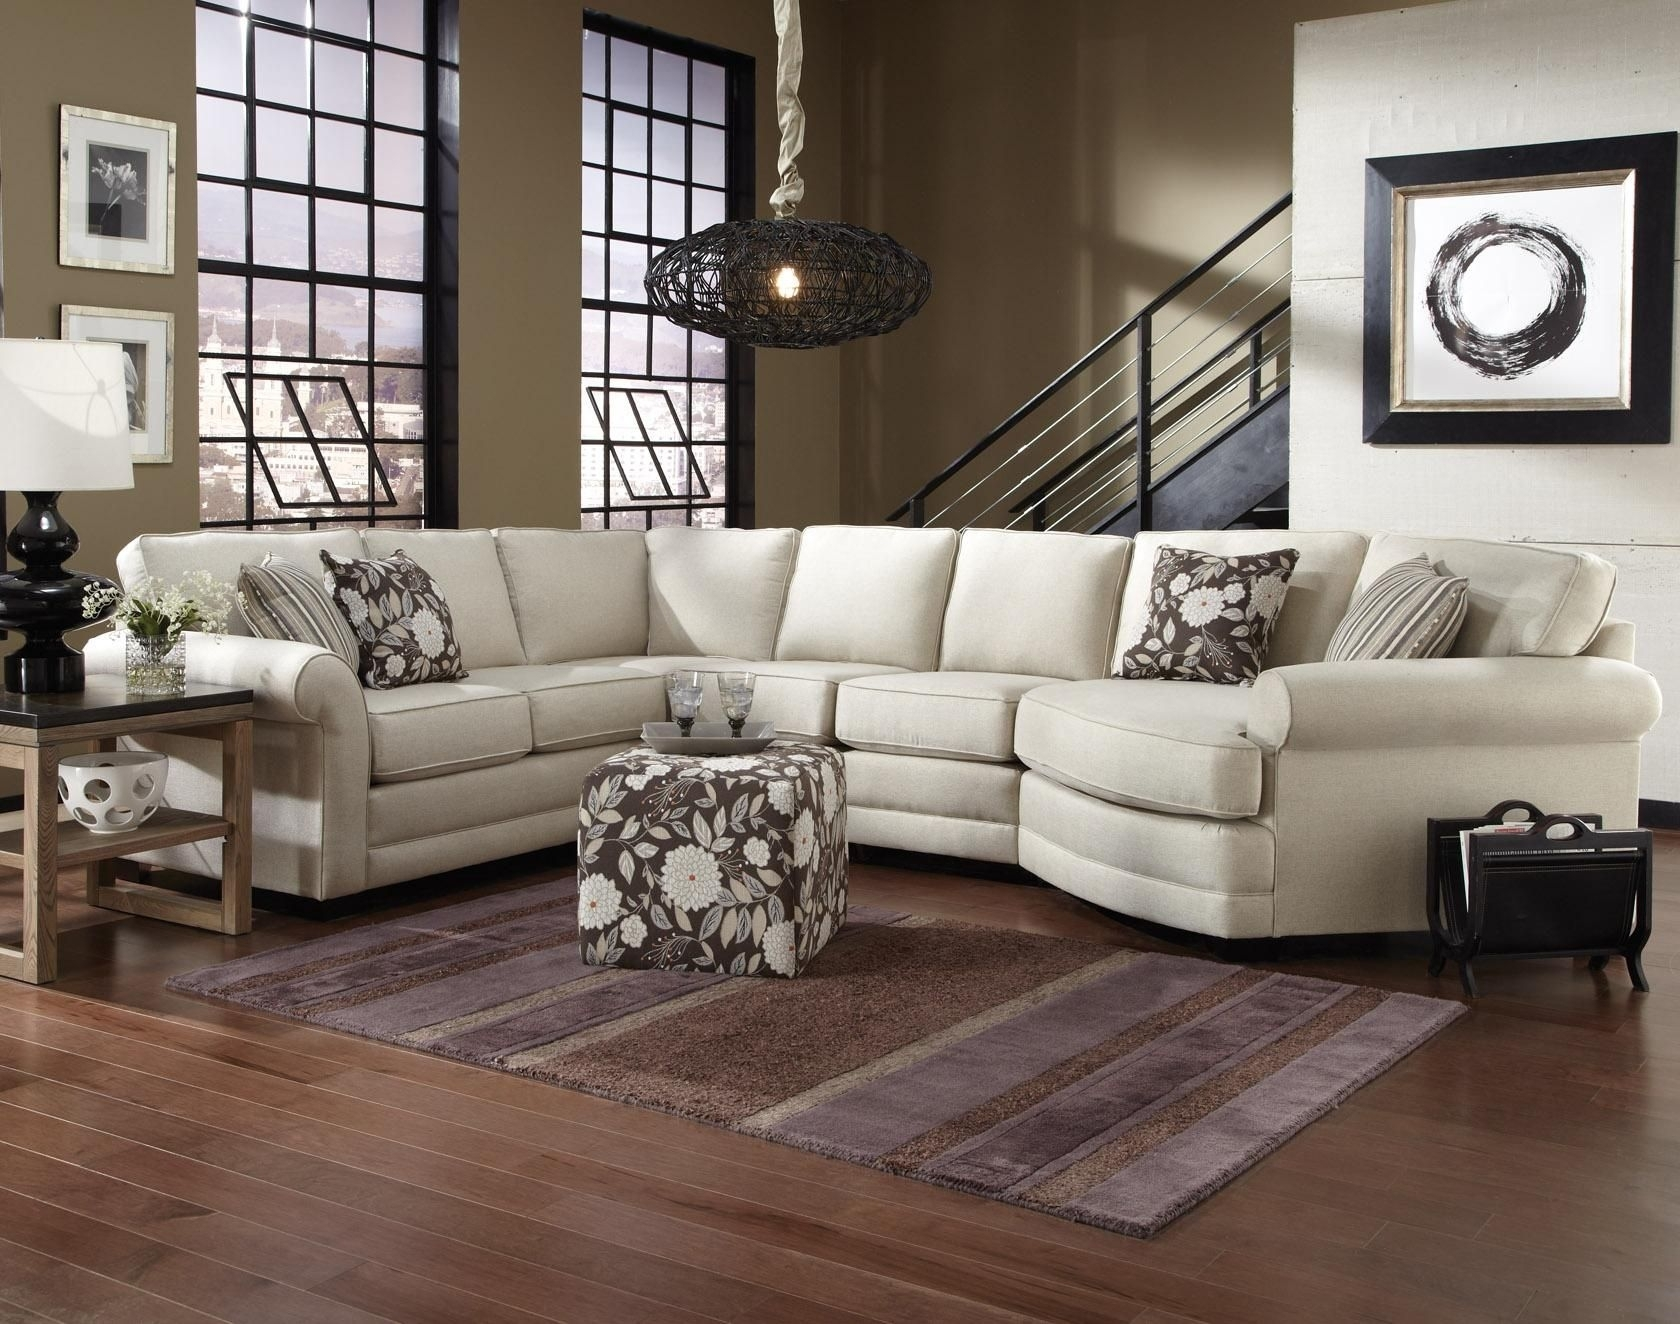 Brantley 5 Seat Sectional Sofa With Cuddlerengland | Living In Kansas City Mo Sectional Sofas (Image 2 of 10)